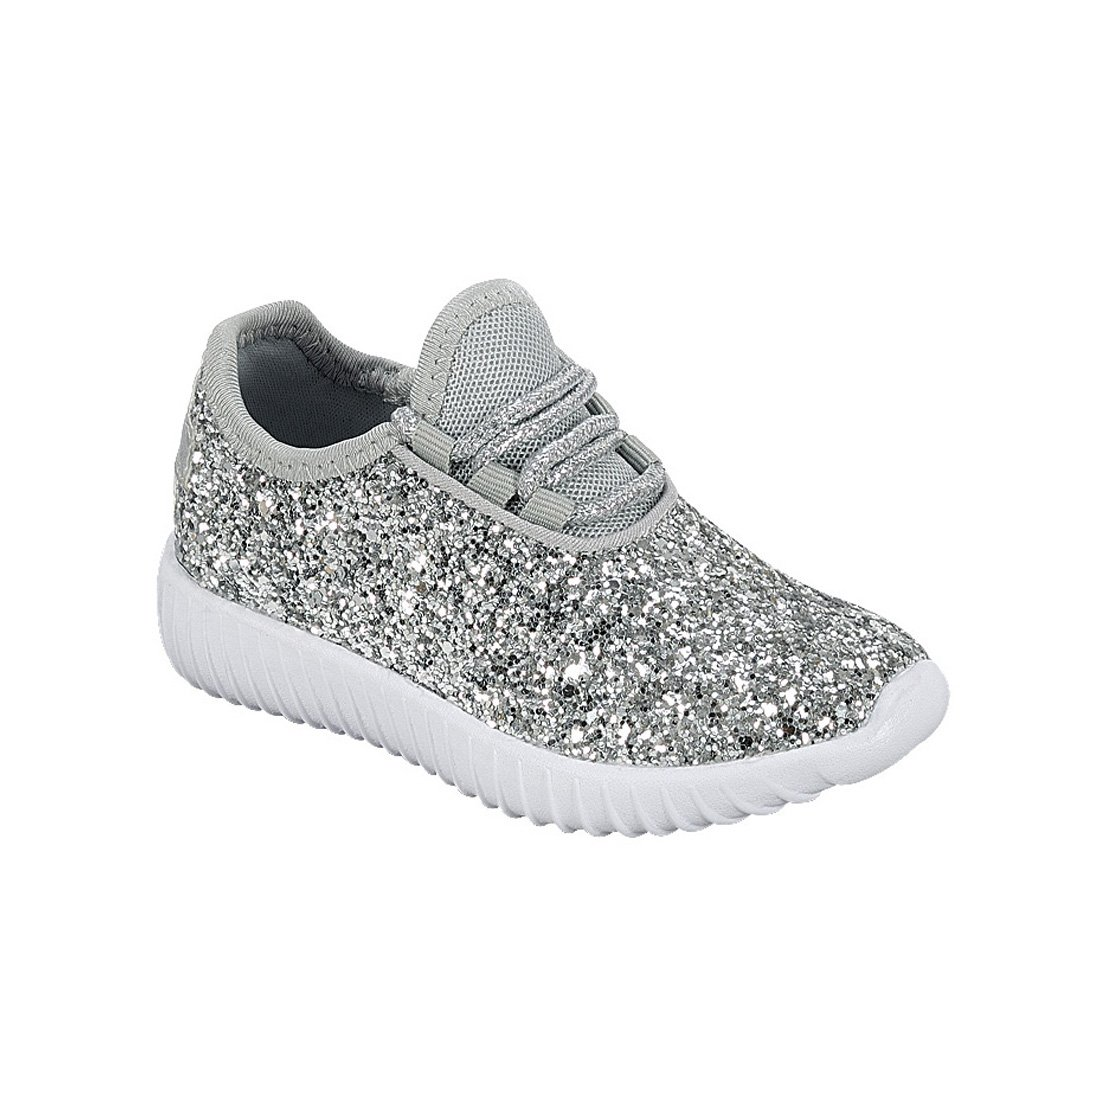 Link Lace up Rock Glitter Fashion Sneaker For Children/Girl/Kids |